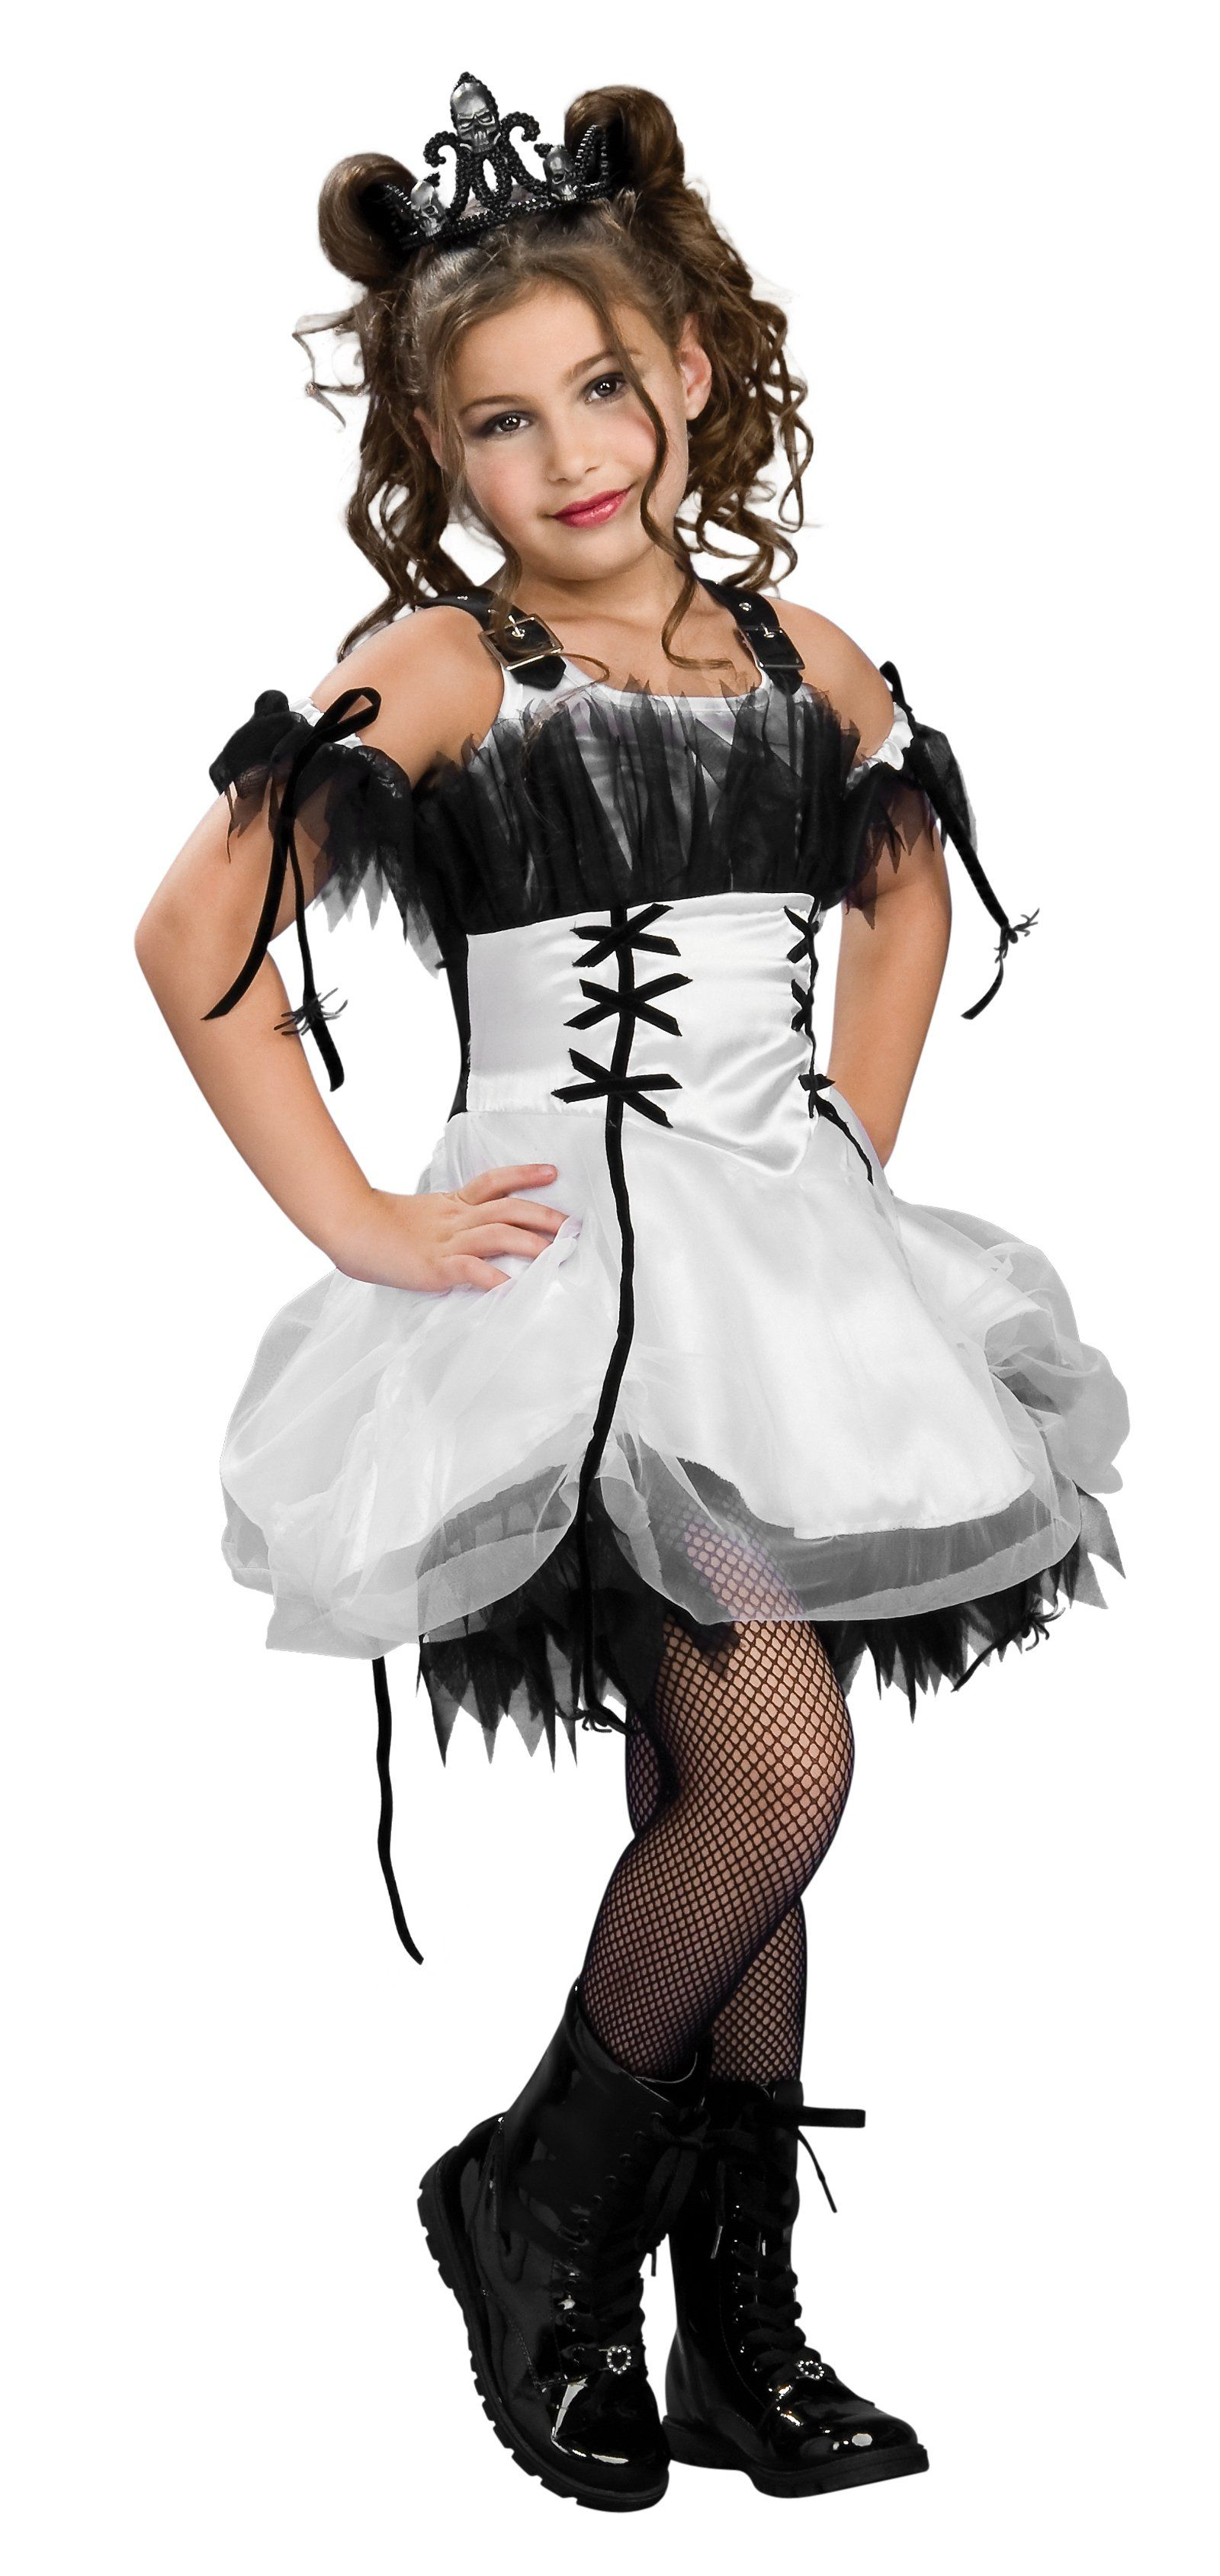 possible costume for halloweenpageant - Pageant Girl Halloween Costume